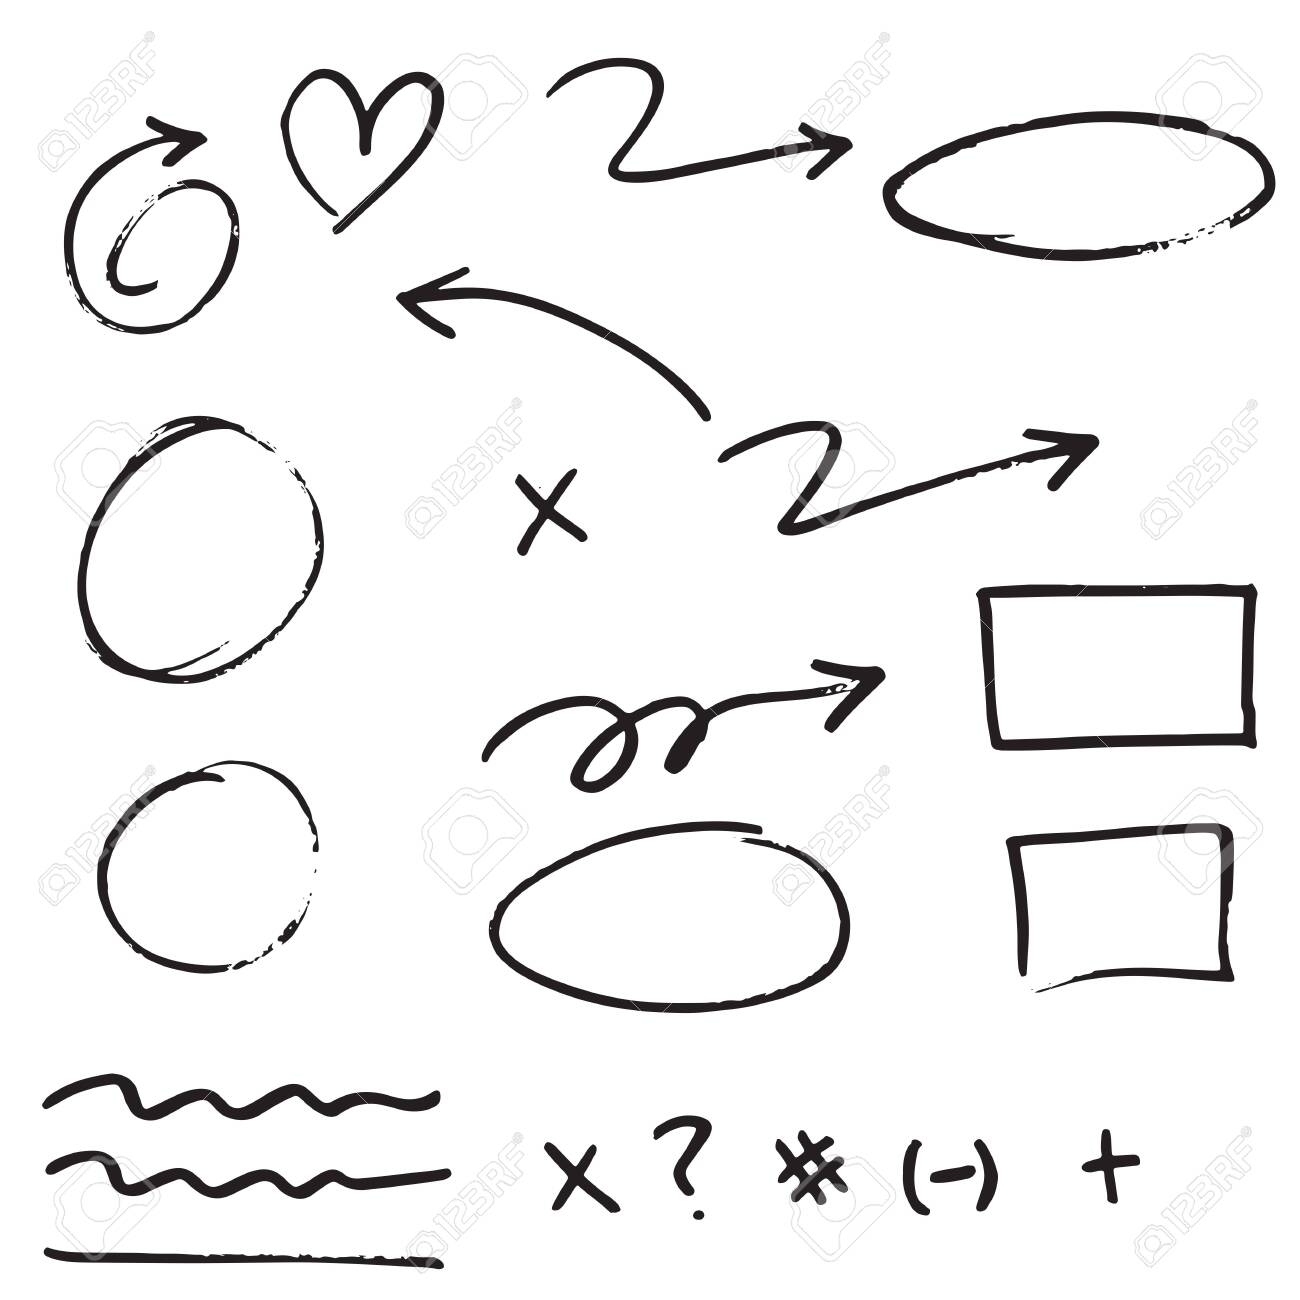 doodle design element. Doodle lines, Arrows, Check mark, circles and curves vector.hand drawn design elements isolated on white background. - 148513869